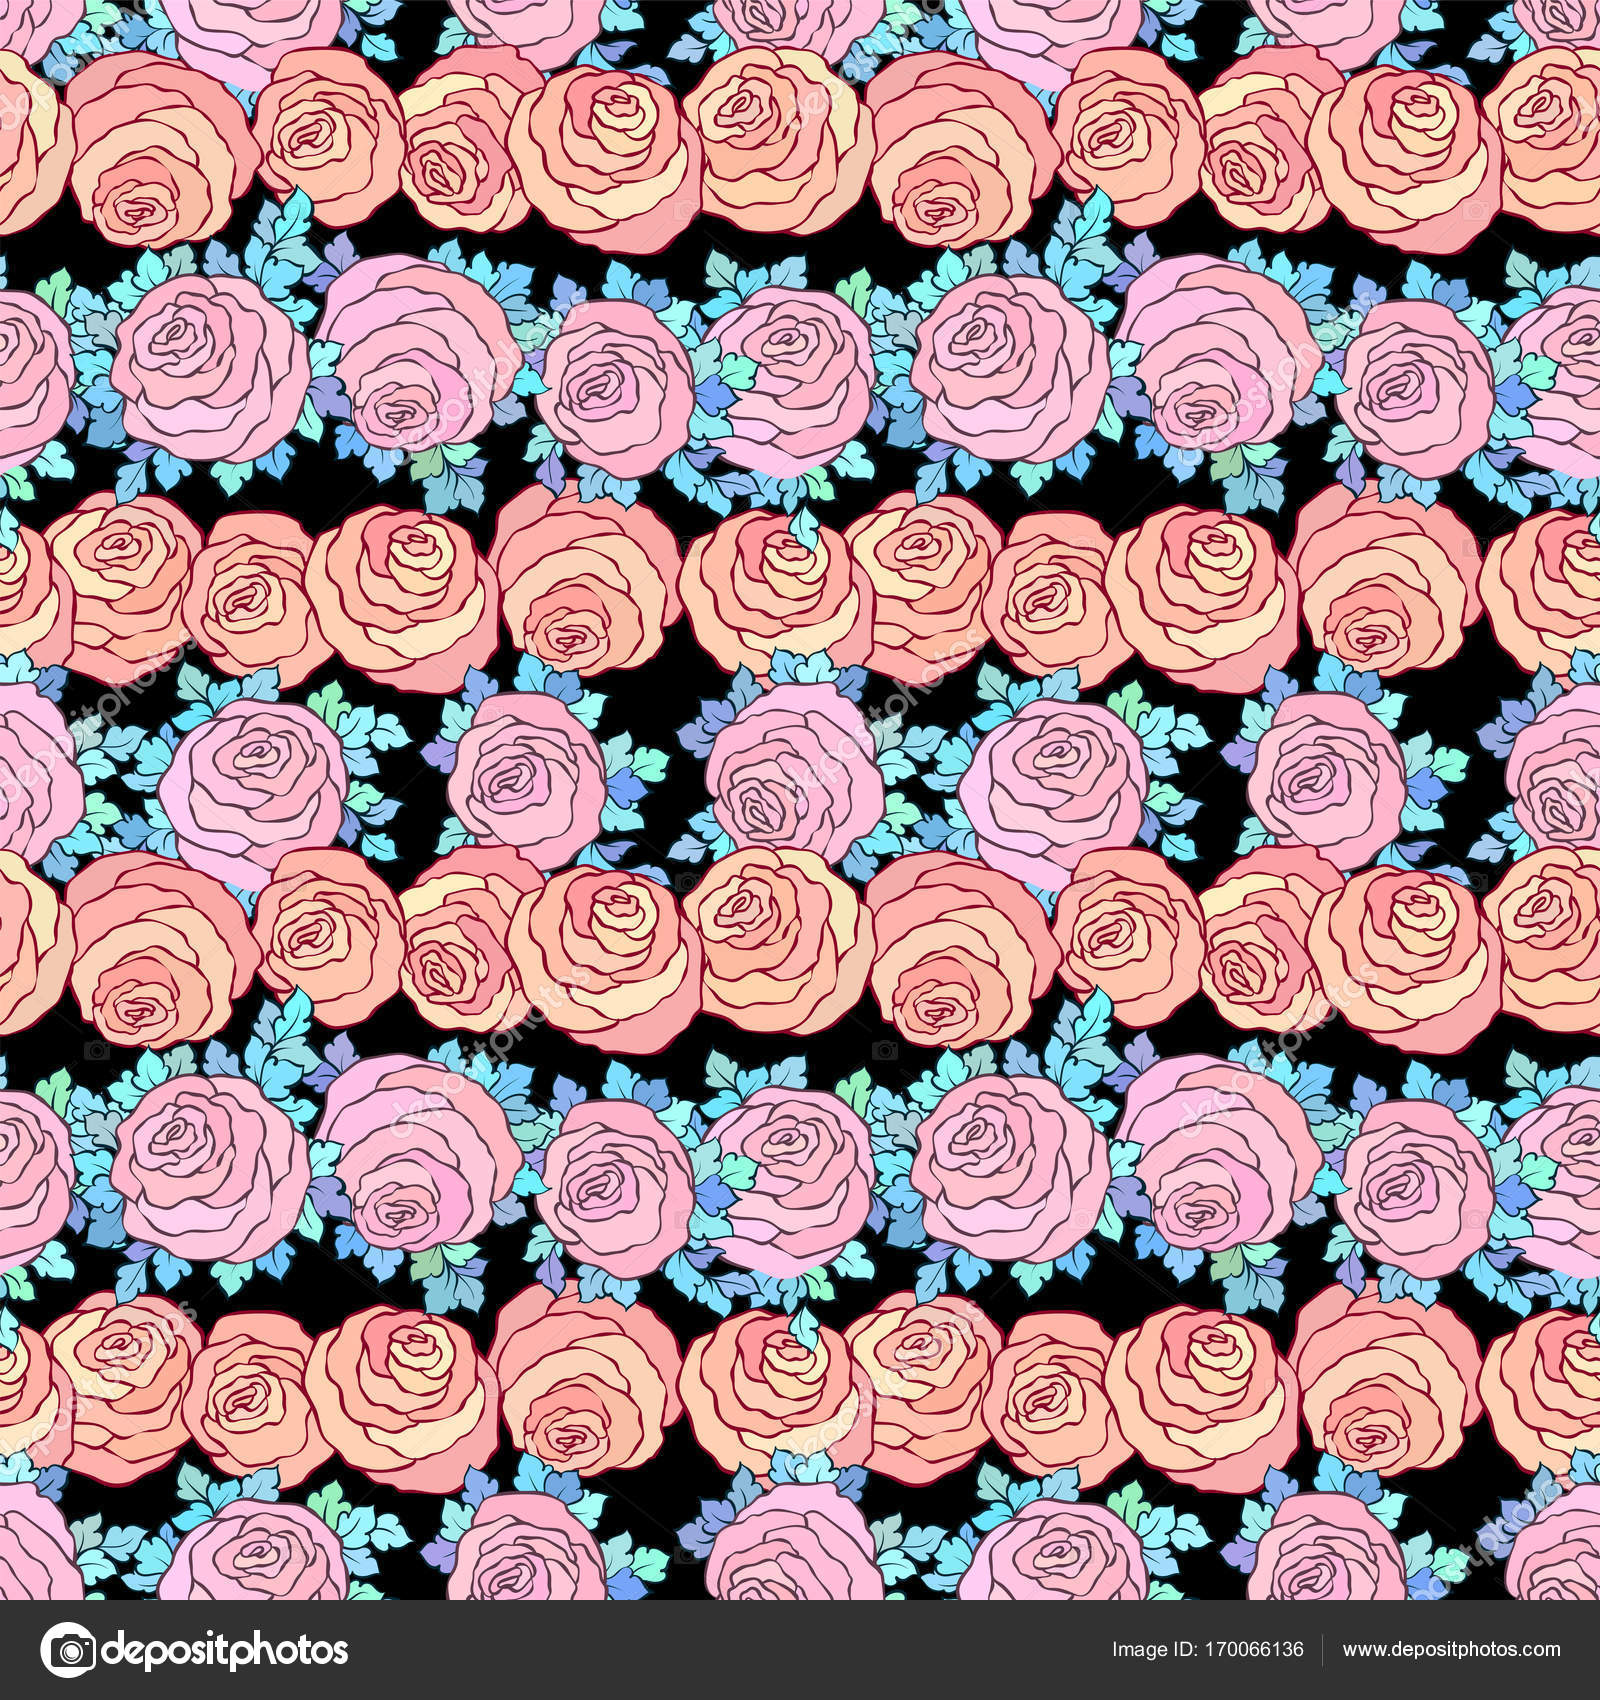 Floral Decorative Bright Wallpaper With Cute Roses Seamless